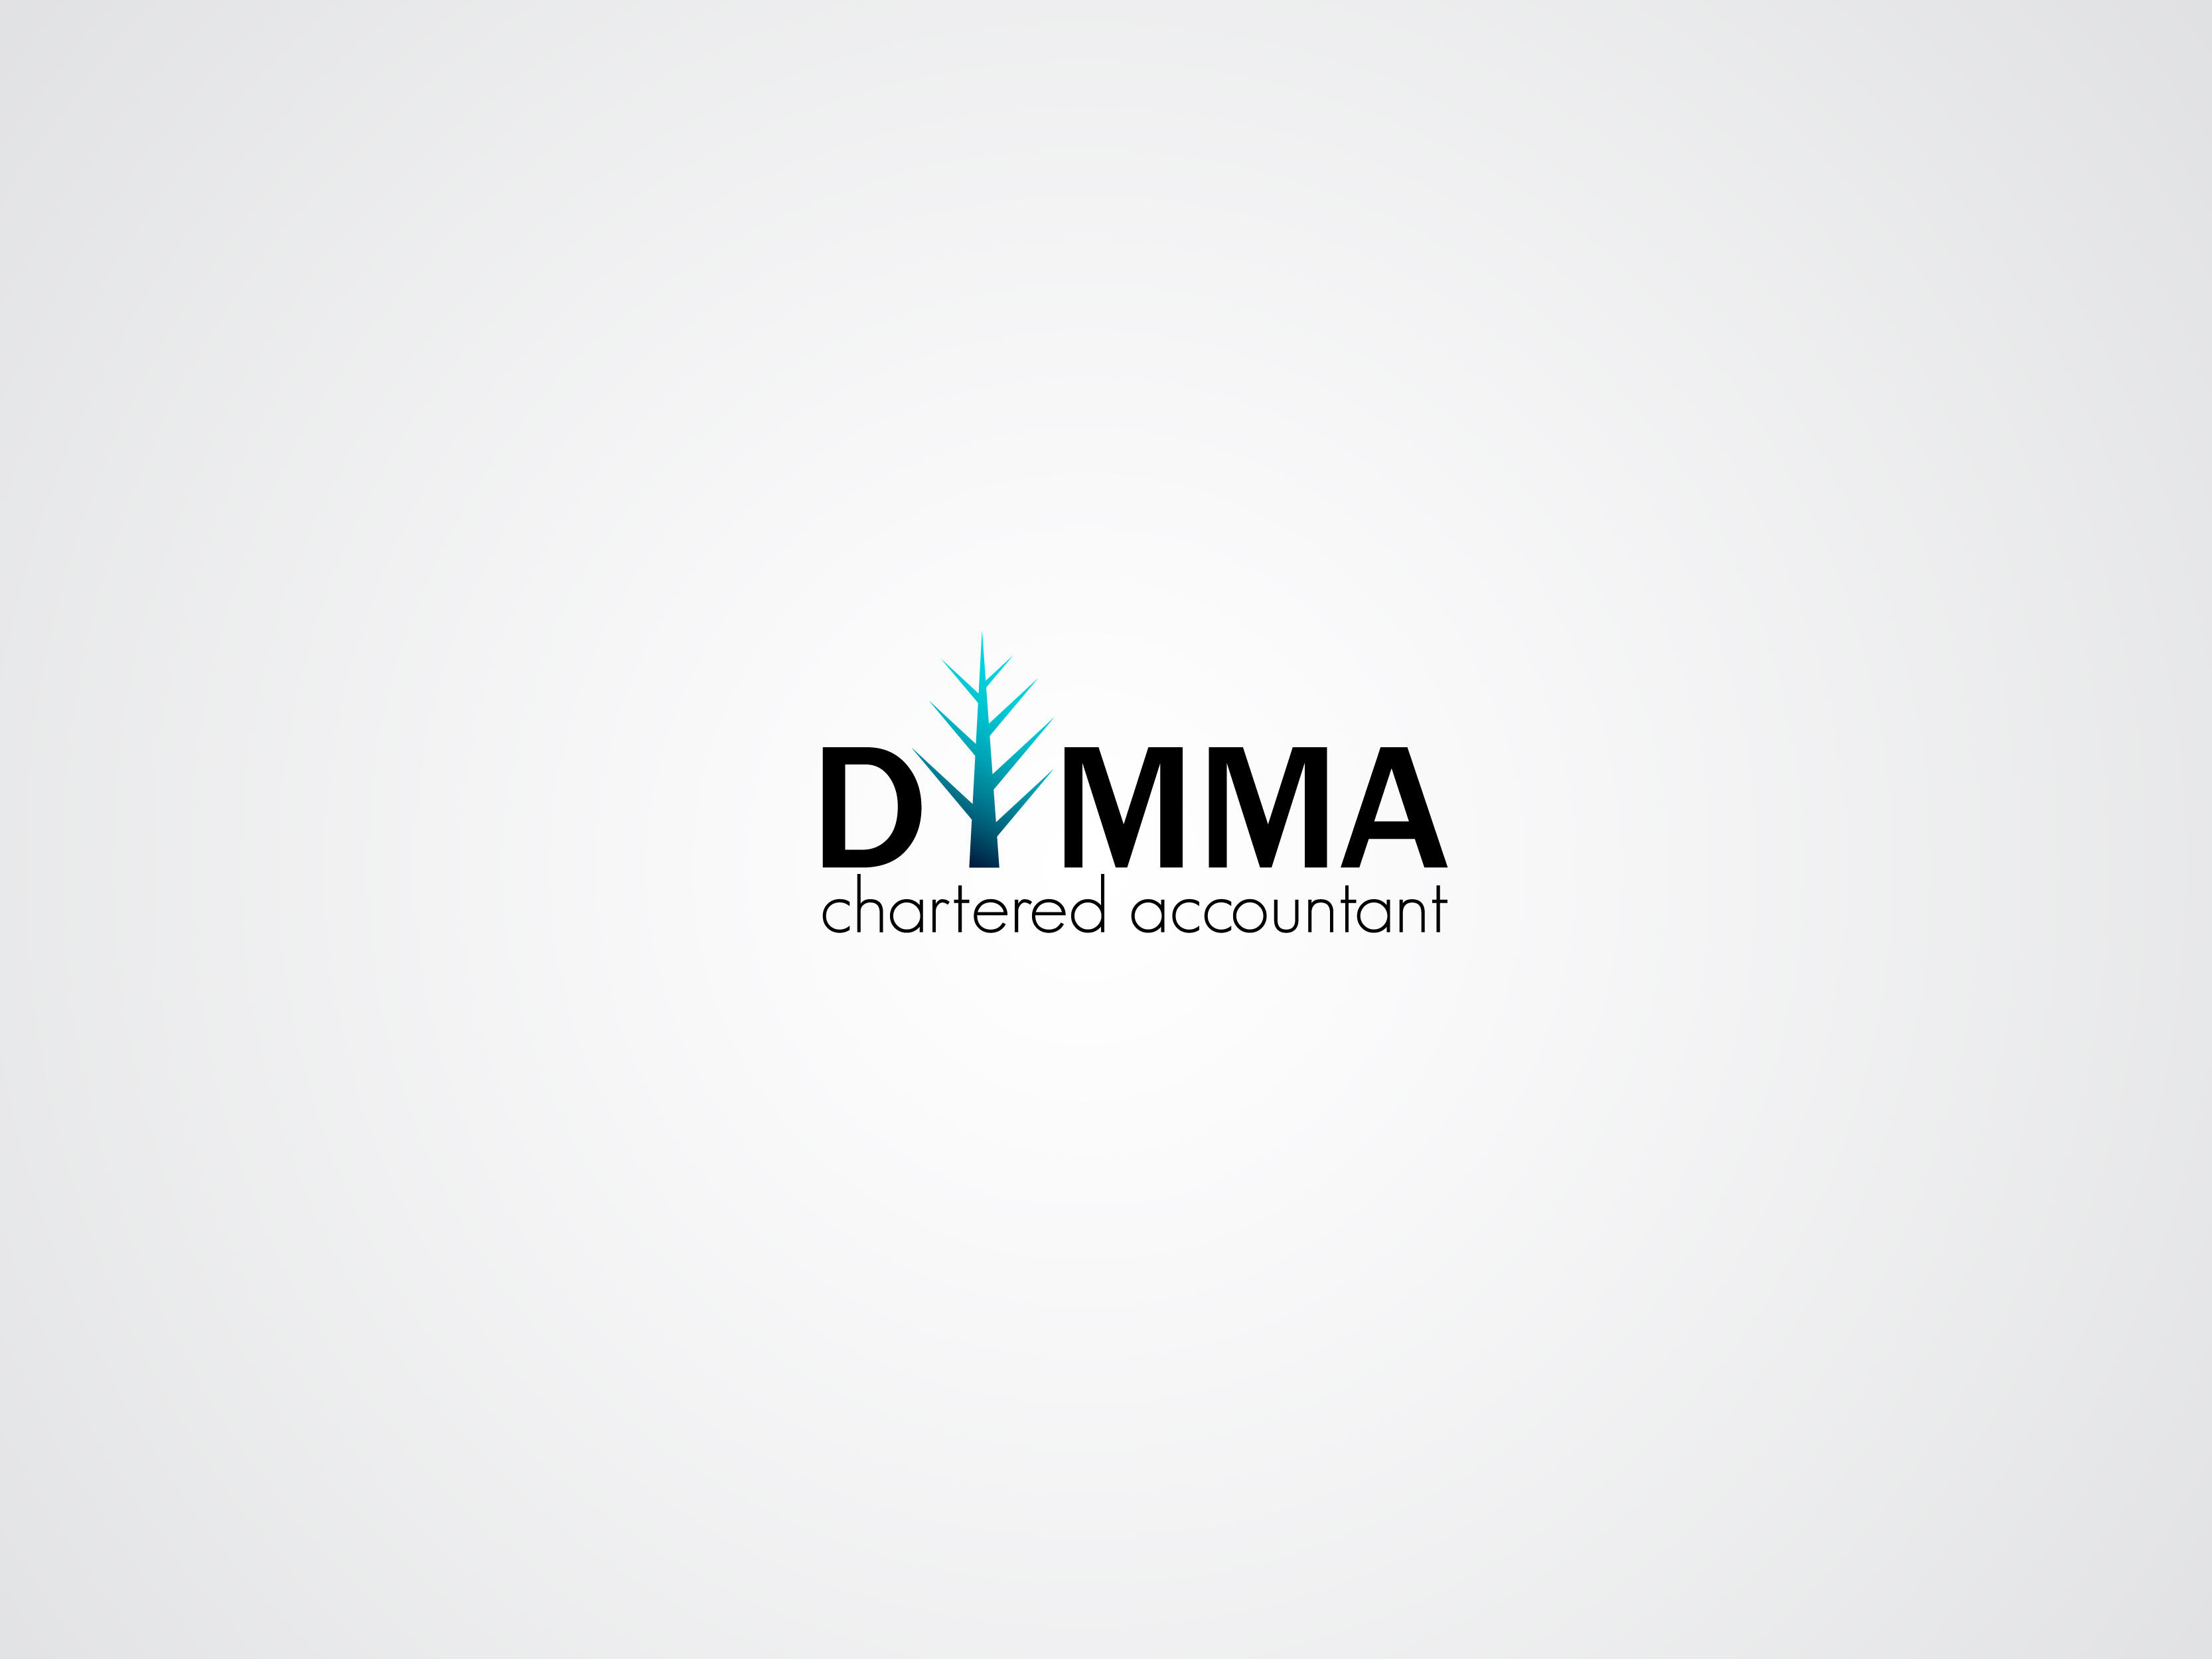 Logo Design by Osi Indra - Entry No. 38 in the Logo Design Contest Creative Logo Design for Dimma Chartered Accountant.